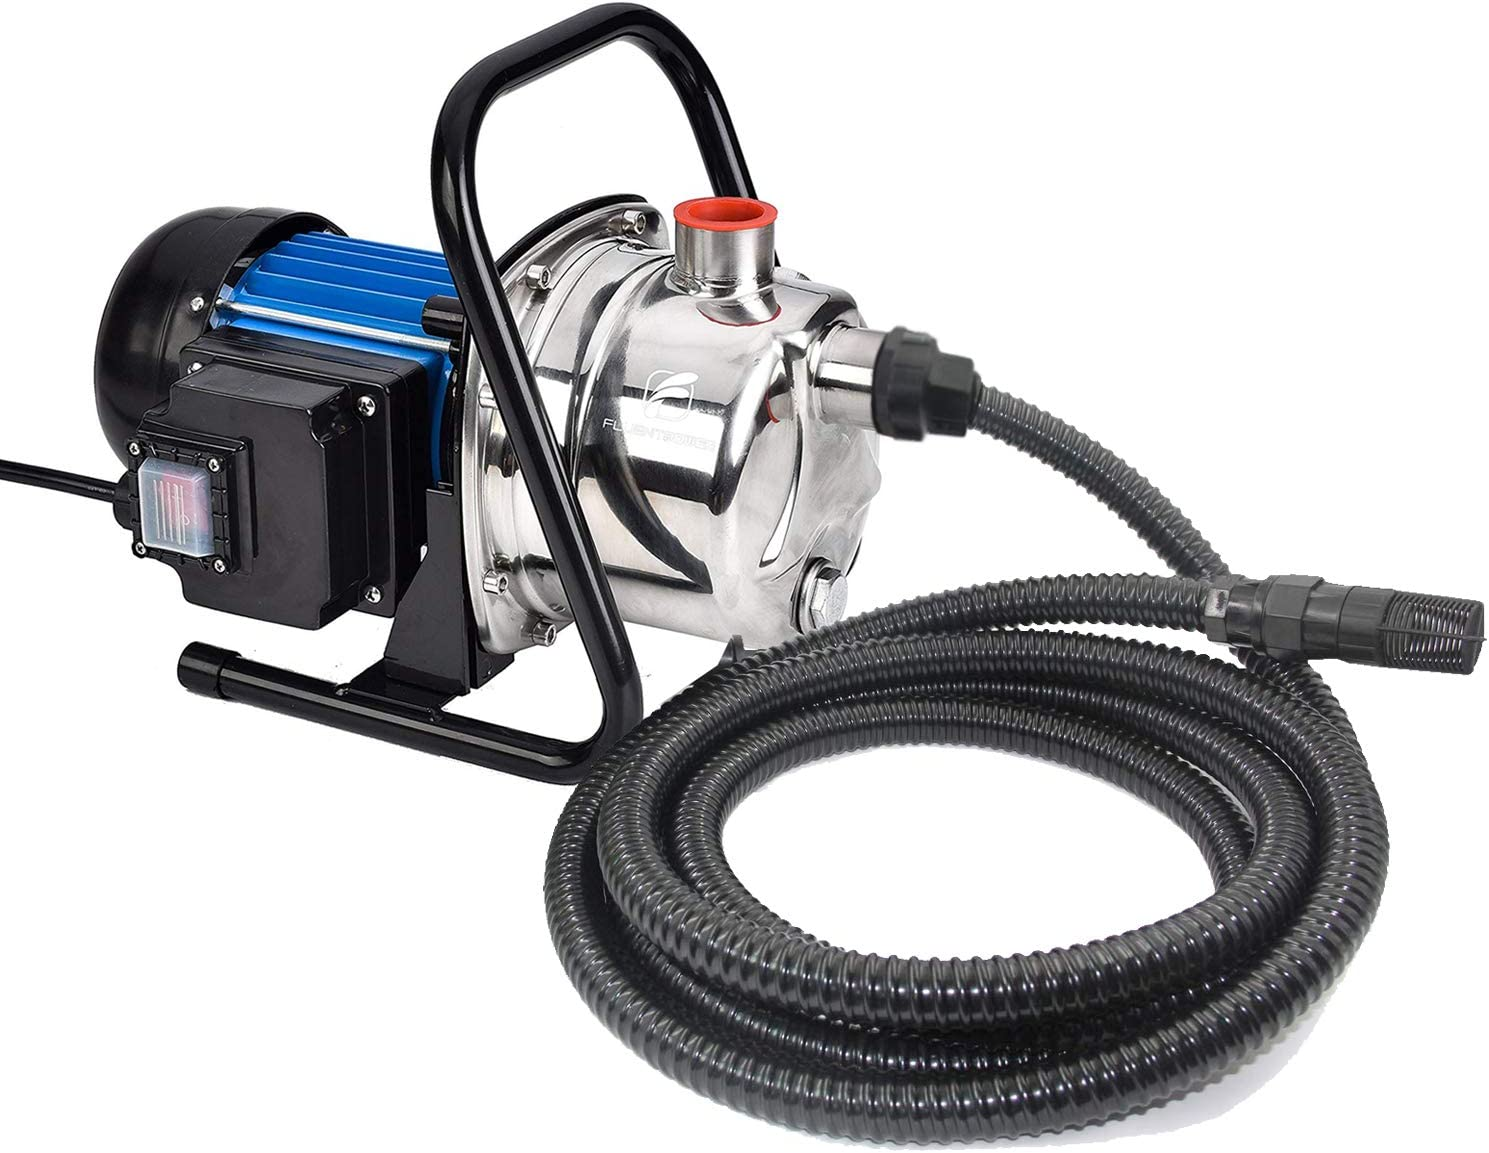 FLUENTPOWER 1 HP Portable Stainless Steel Sprinkling Pump, Water Transfer Pump, Shallow Well Pump for Home Garden Lawn Irrigation and Pressure Booster, 13FT Intake Hose with check valve included